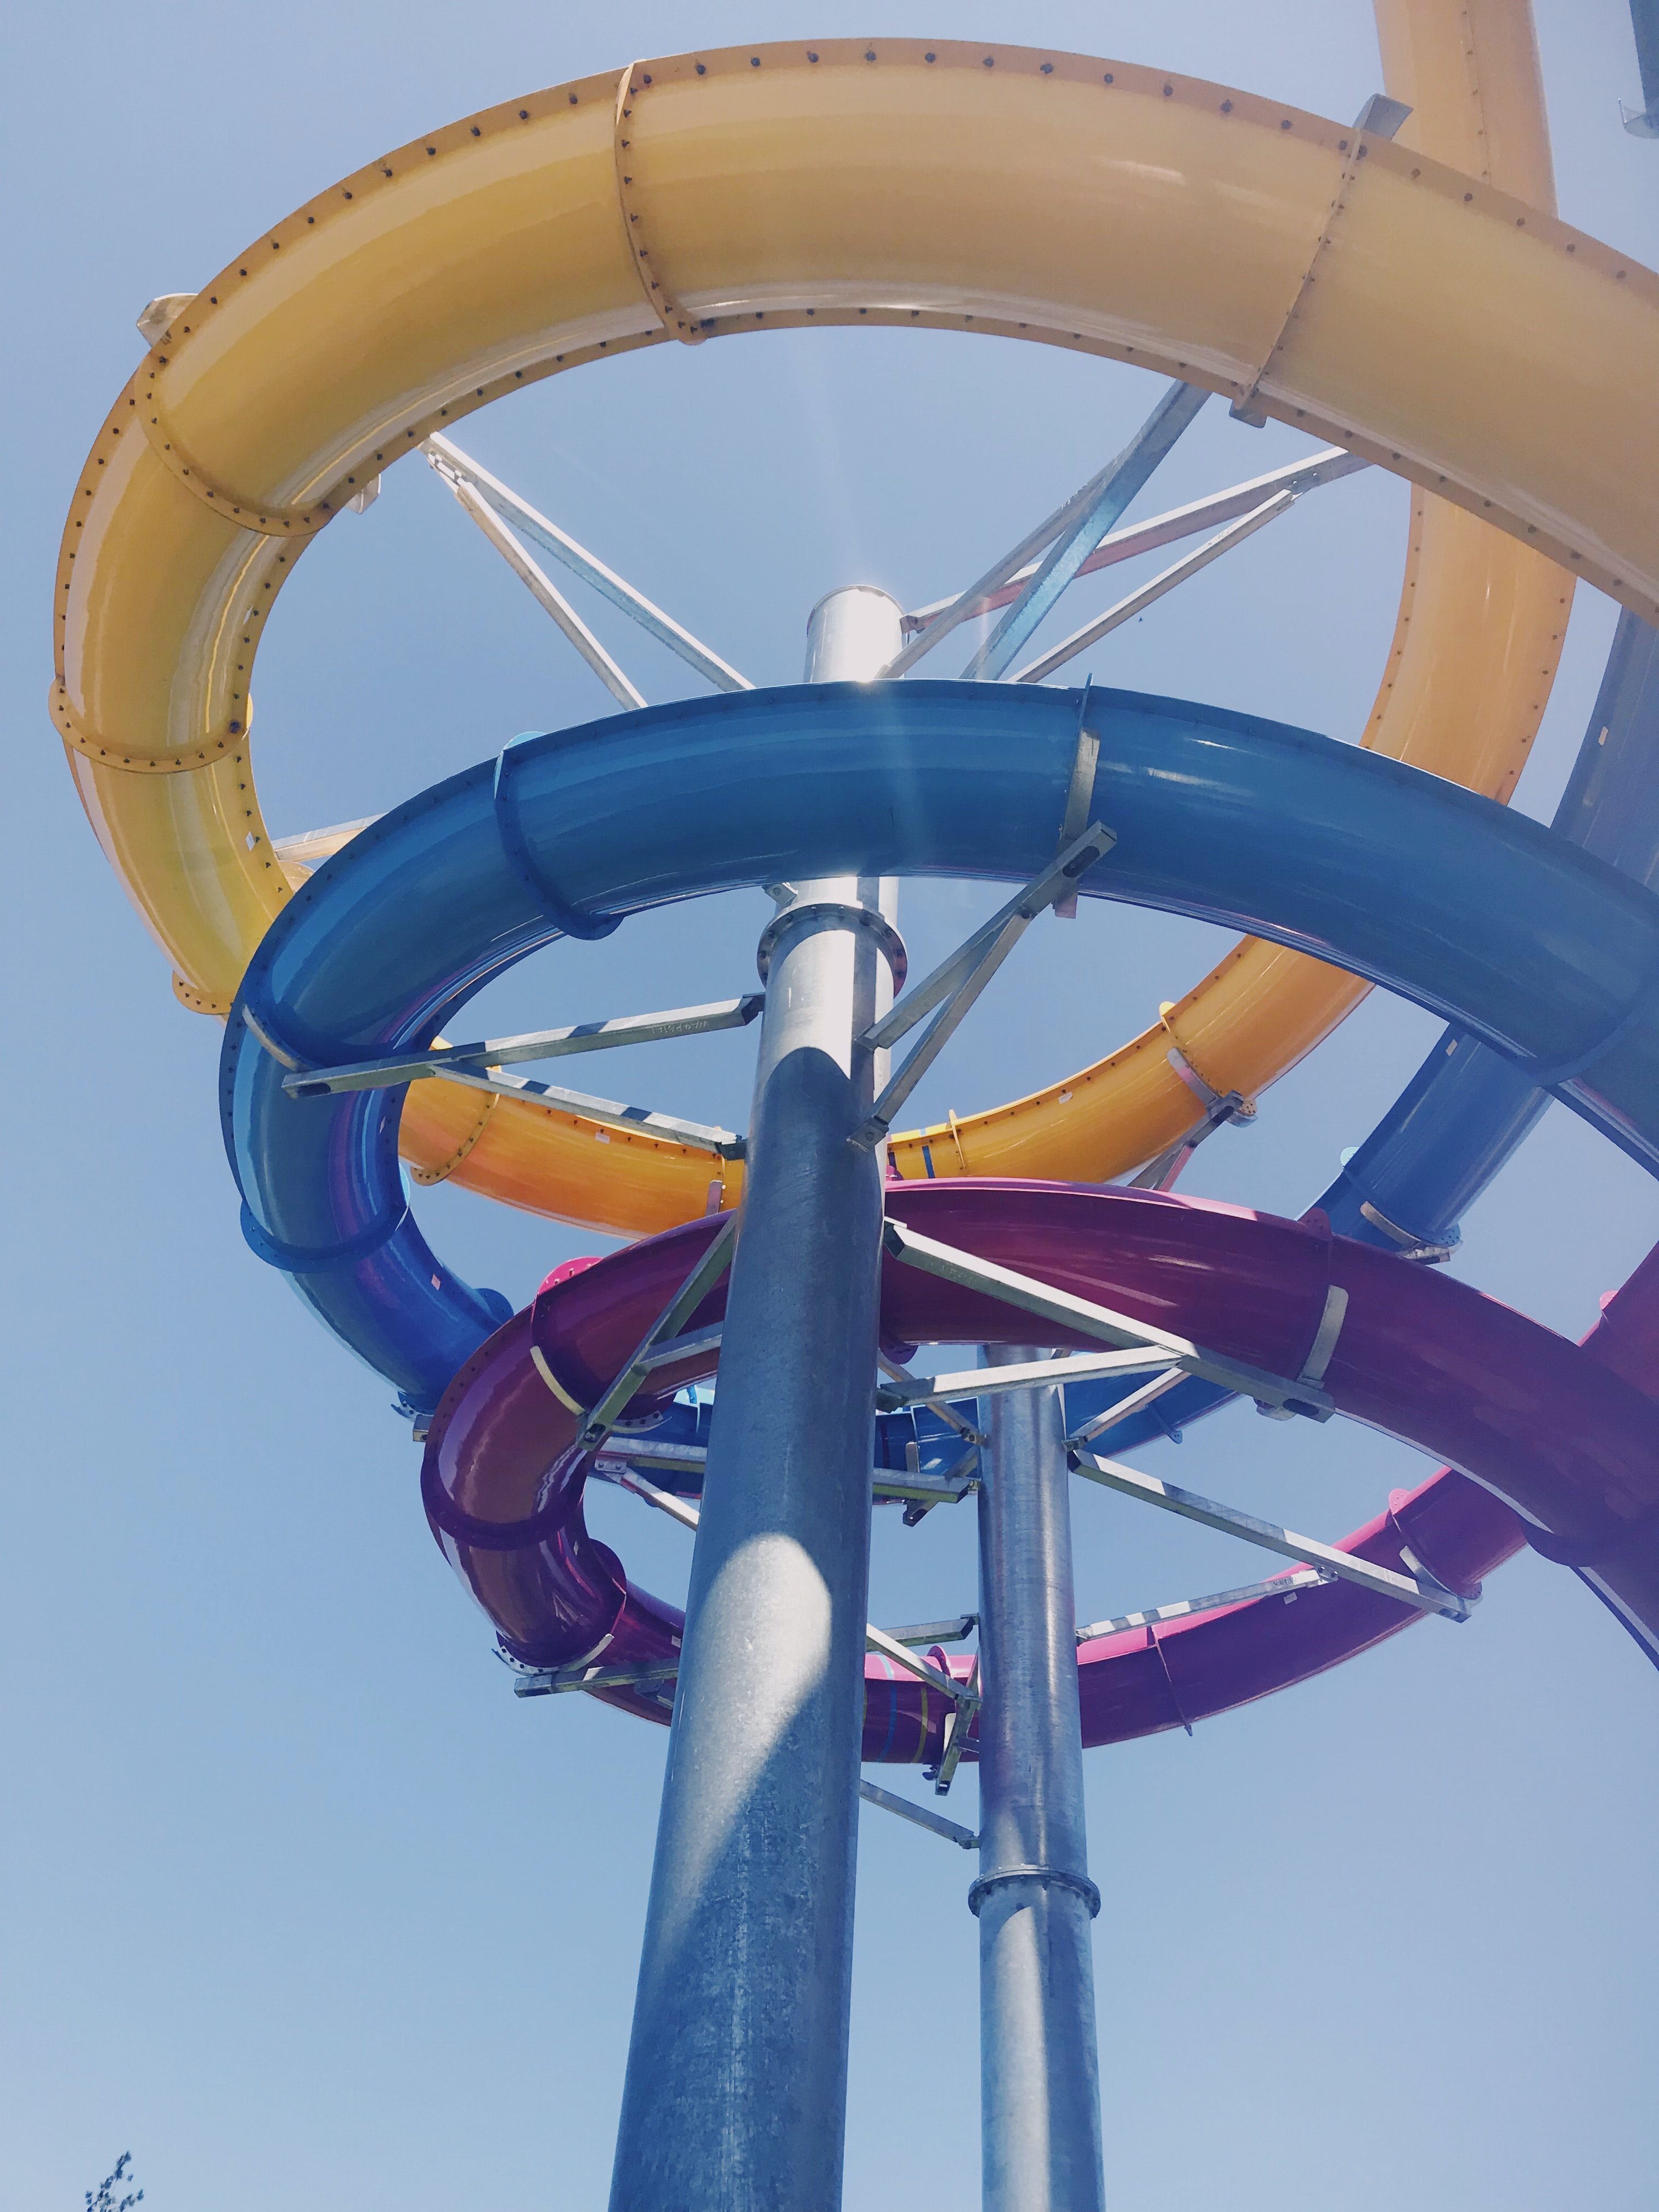 multicolored slide at daytime